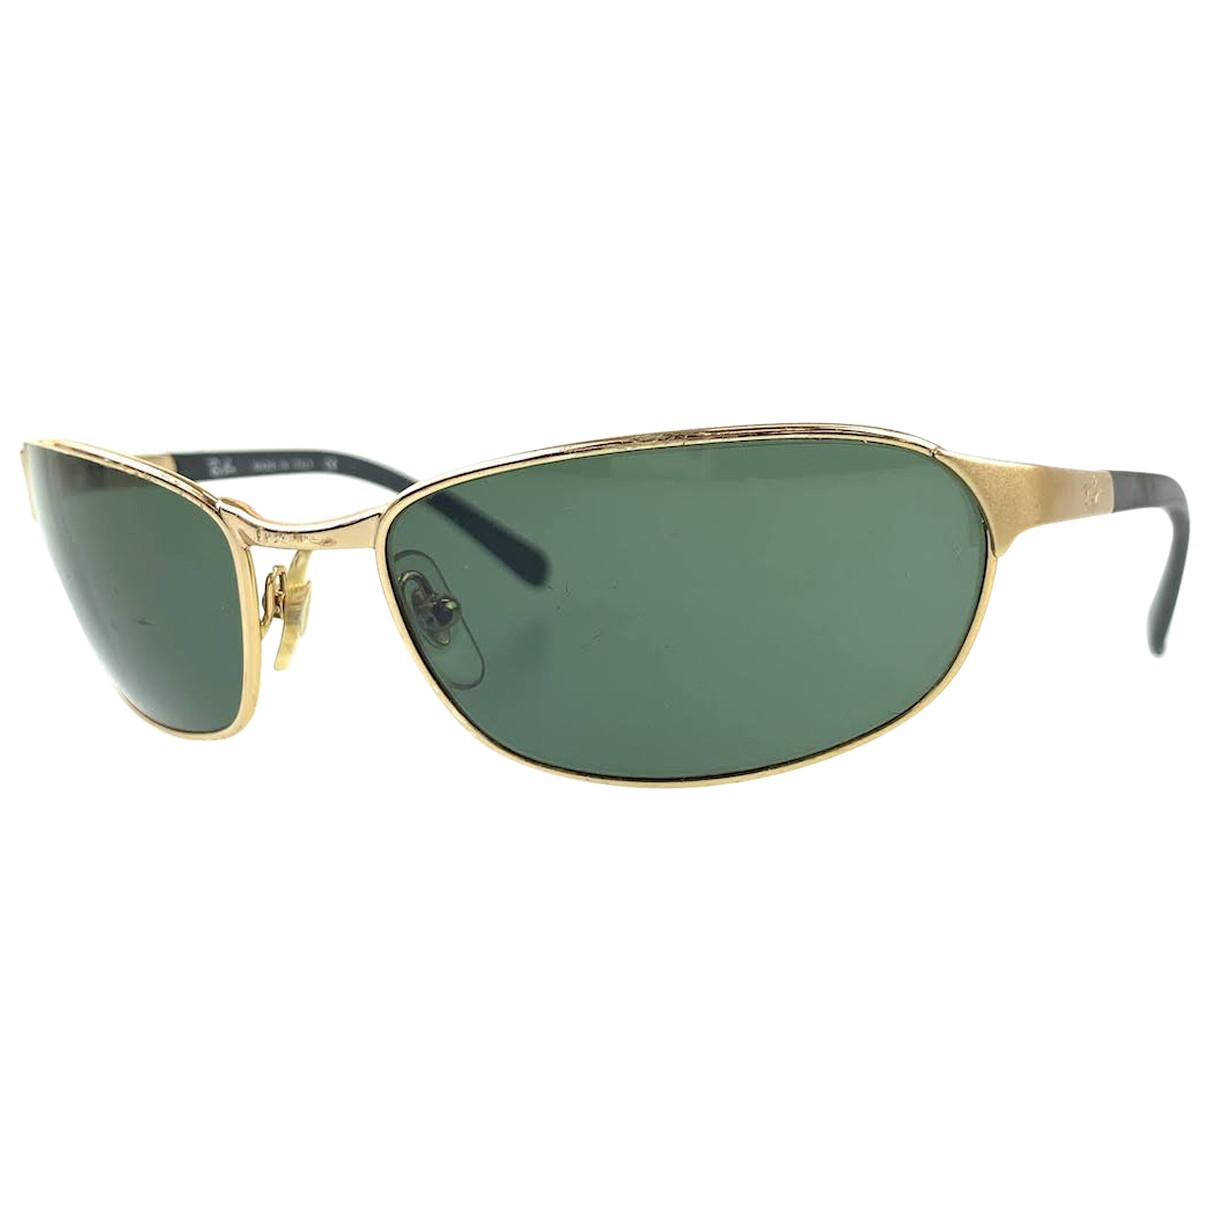 Ray-ban N Sunglasses for Men